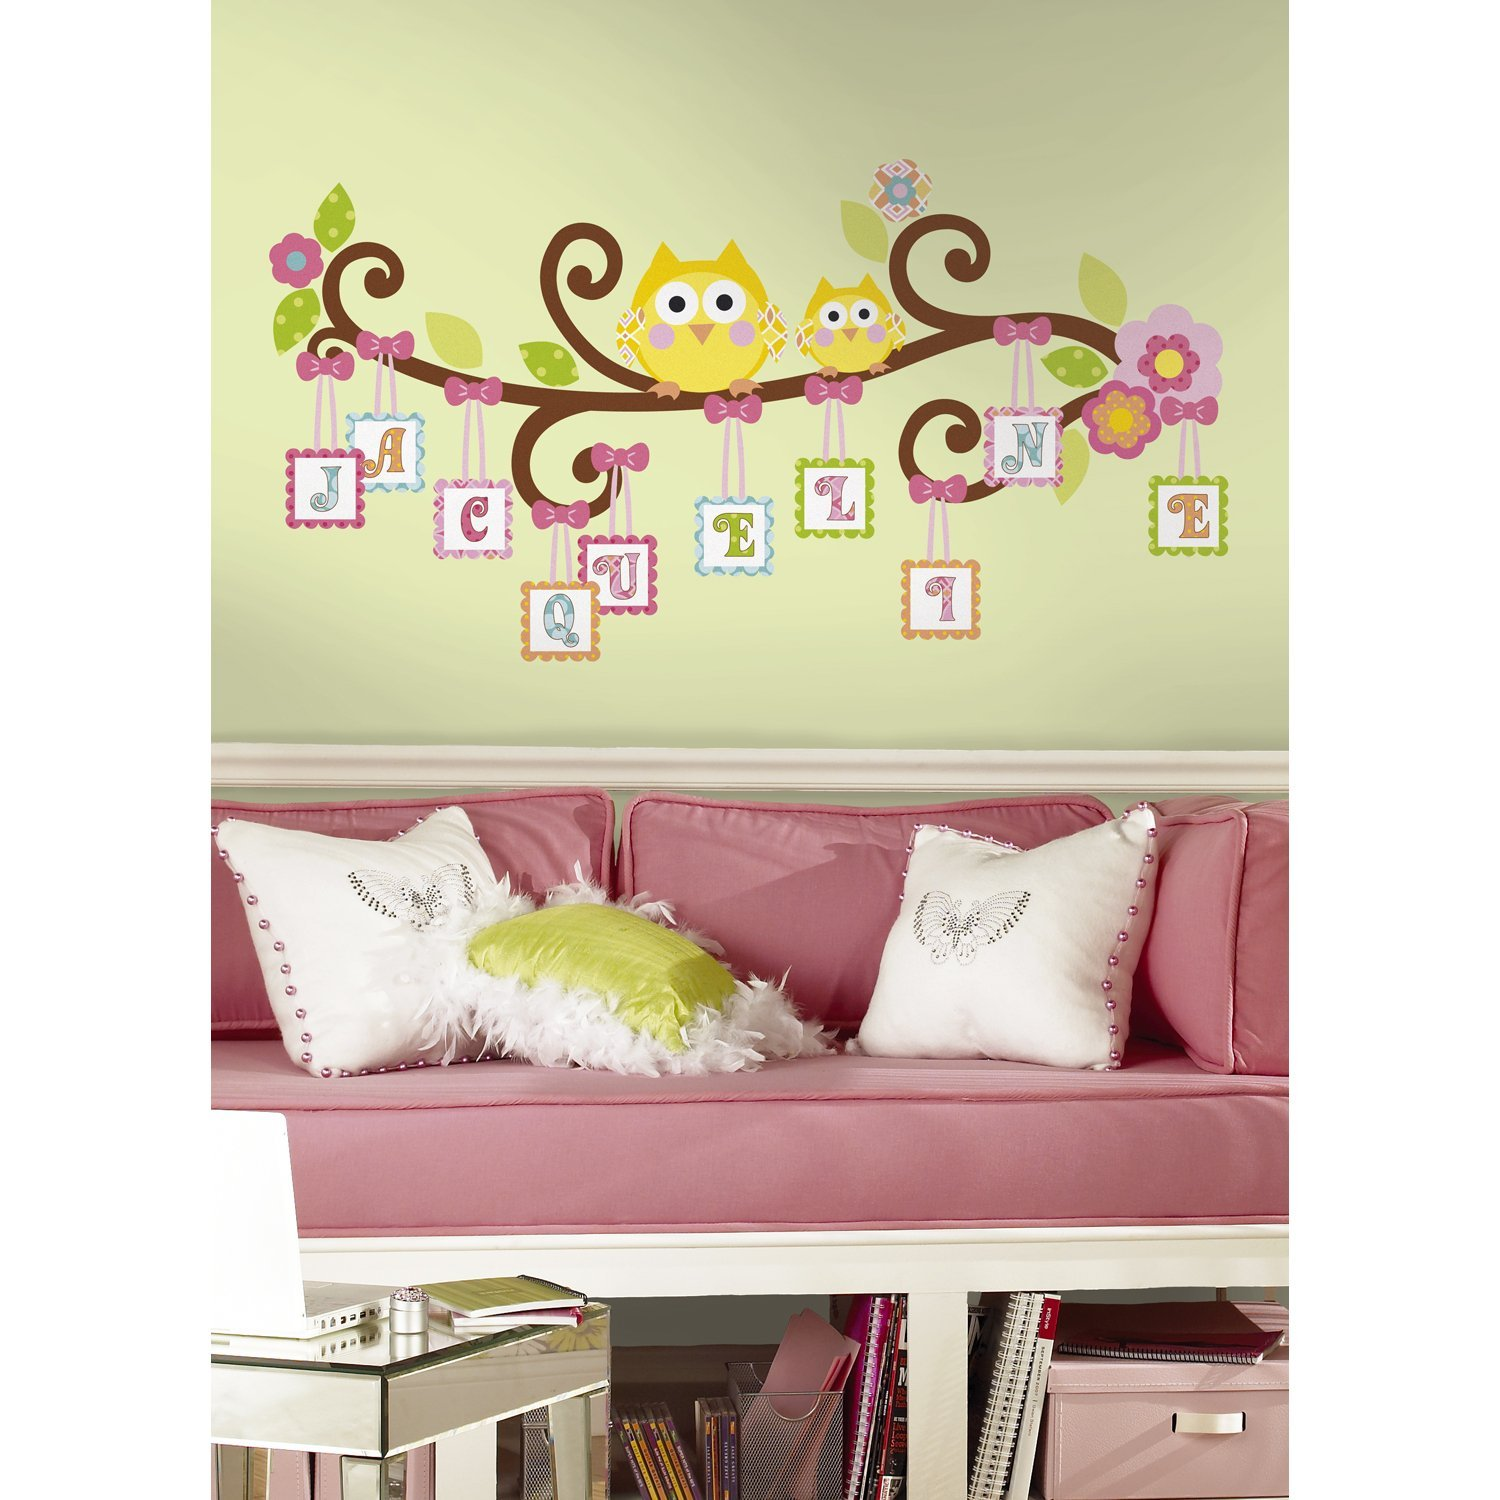 wall decals letter - Mersn.proforum.co